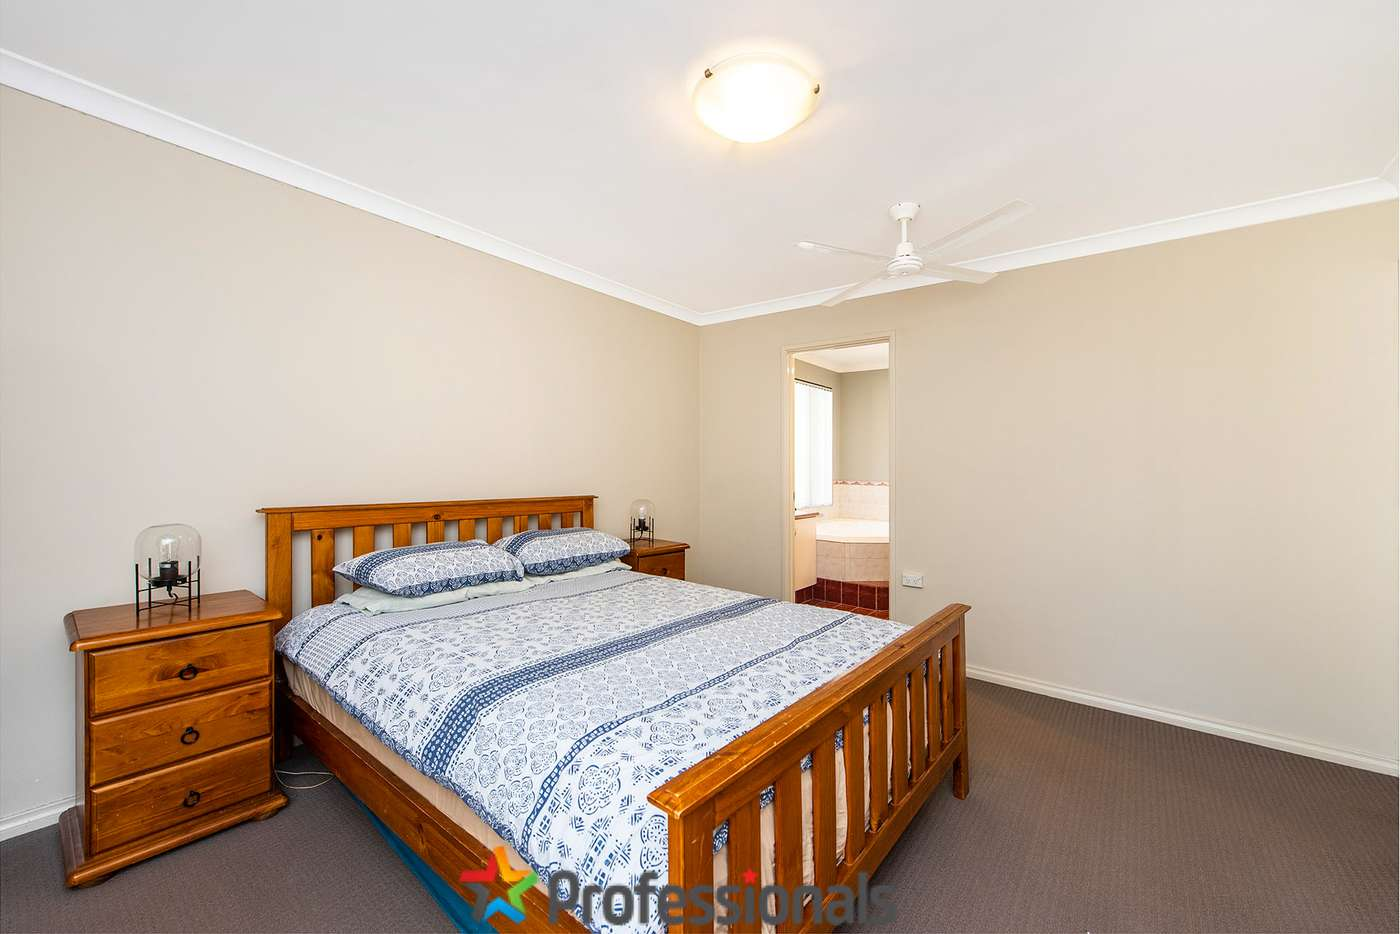 Sixth view of Homely house listing, 4 Transit Place, Falcon WA 6210